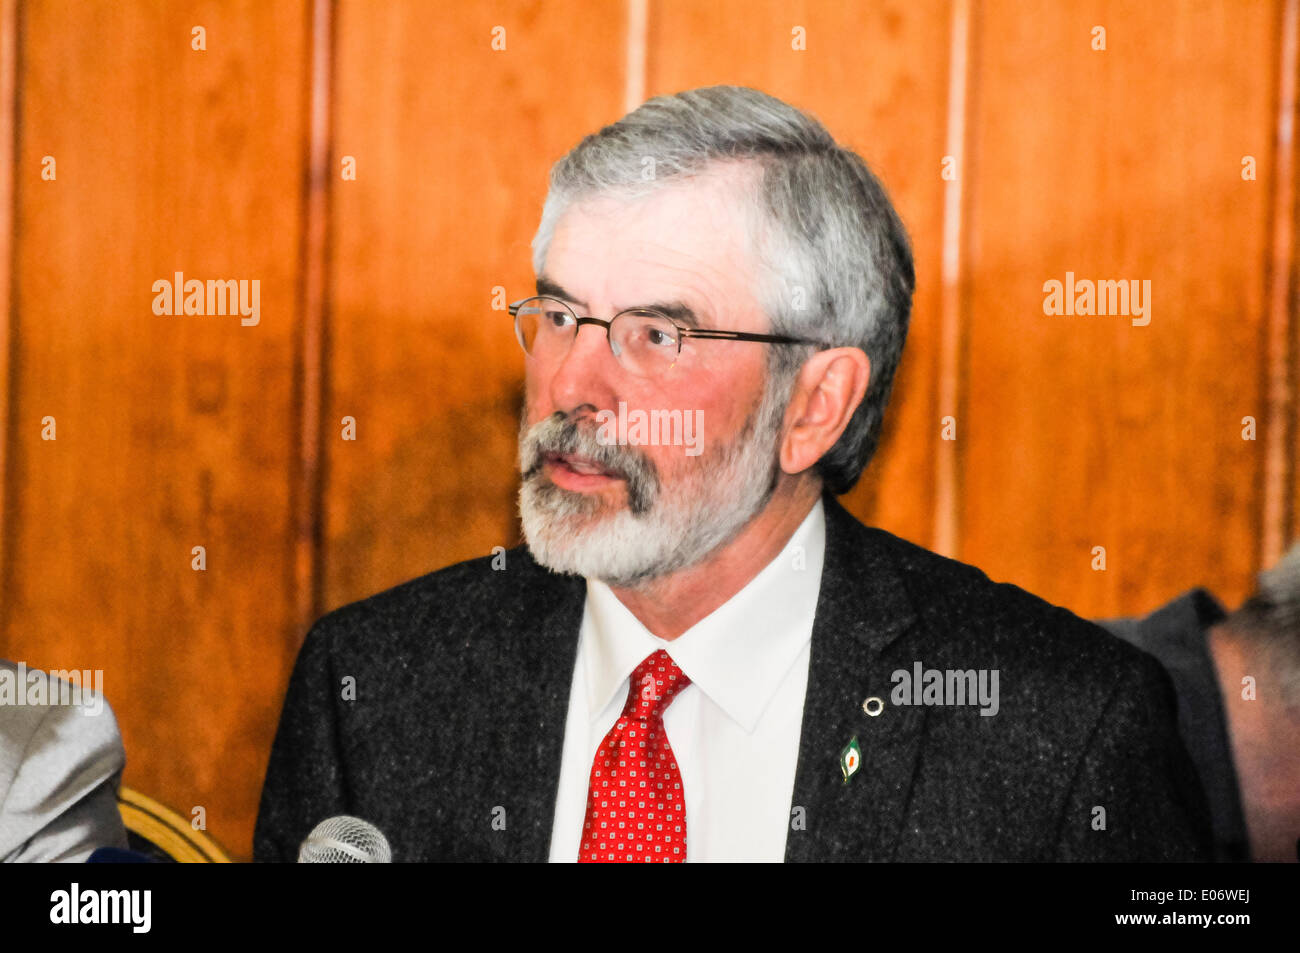 Belfast, Northern Ireland. 4 May 2014 - Gerry Adams holds a press conference, less than an hour after his release from PSNI questioning. Credit:  Stephen Barnes/Alamy Live News - Stock Image